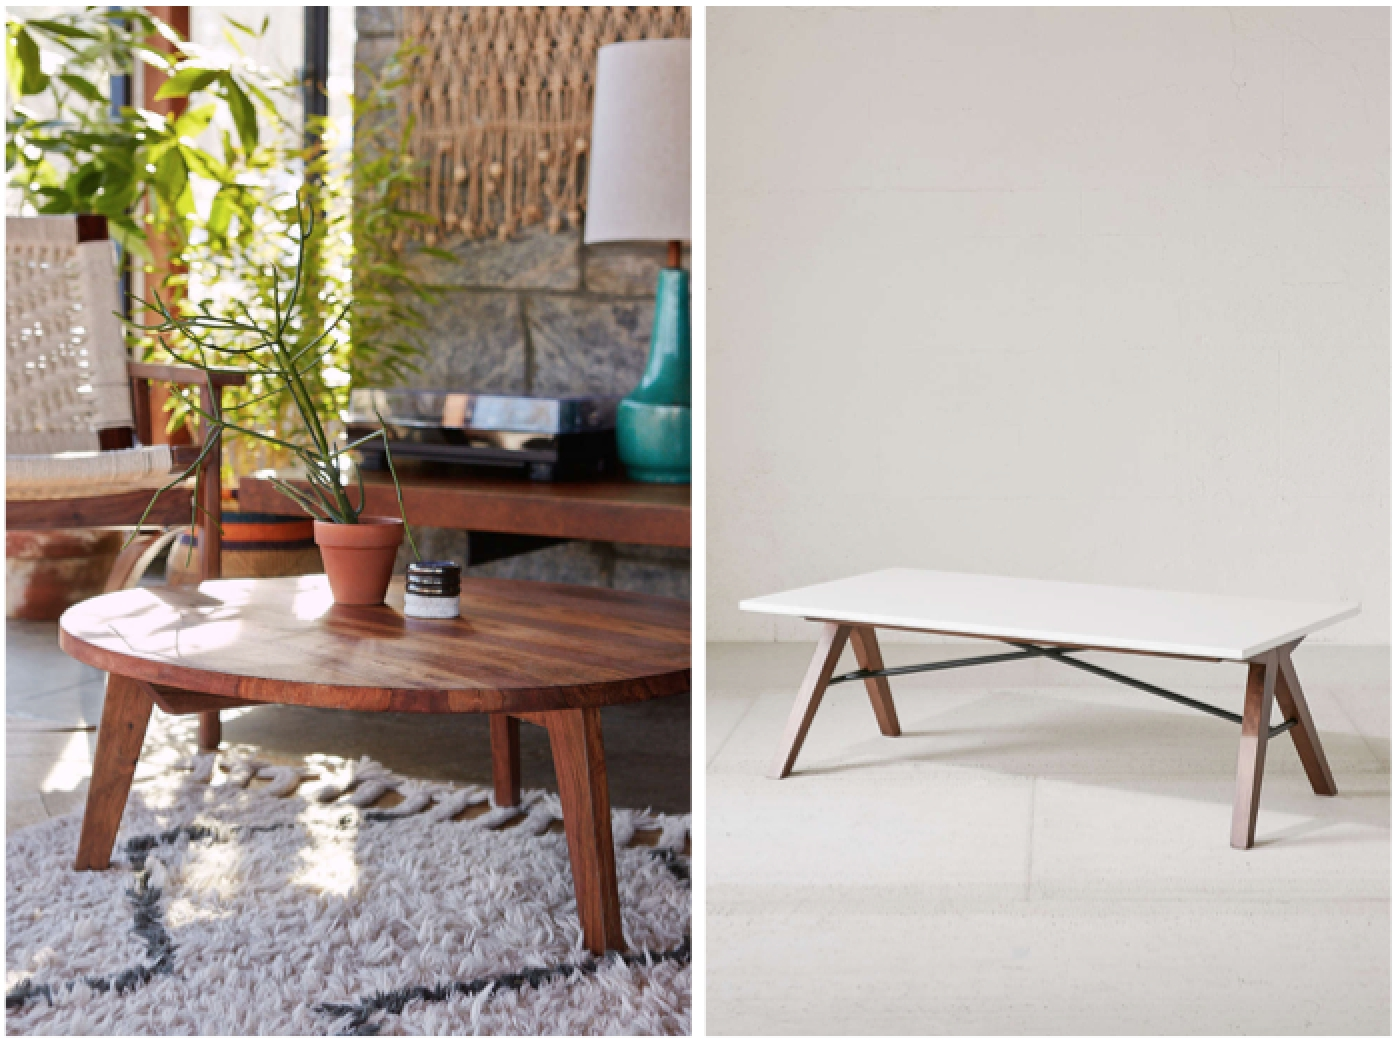 Cool Coffee Tables. Cool Modern Wood And Metal Furniture Civic inside Odd Shaped Coffee Tables (Image 14 of 30)